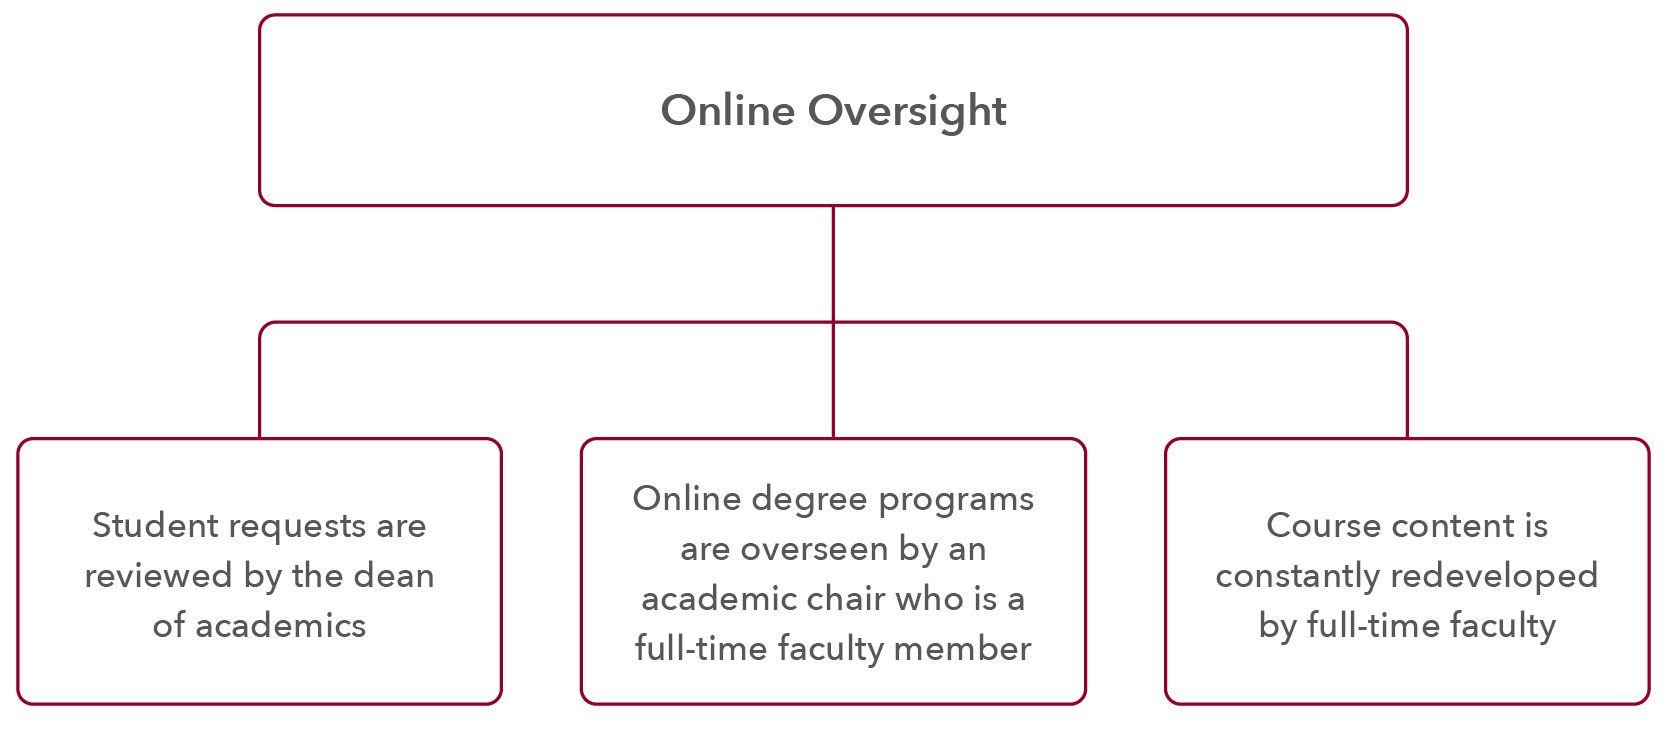 Florida Tech Online Oversight